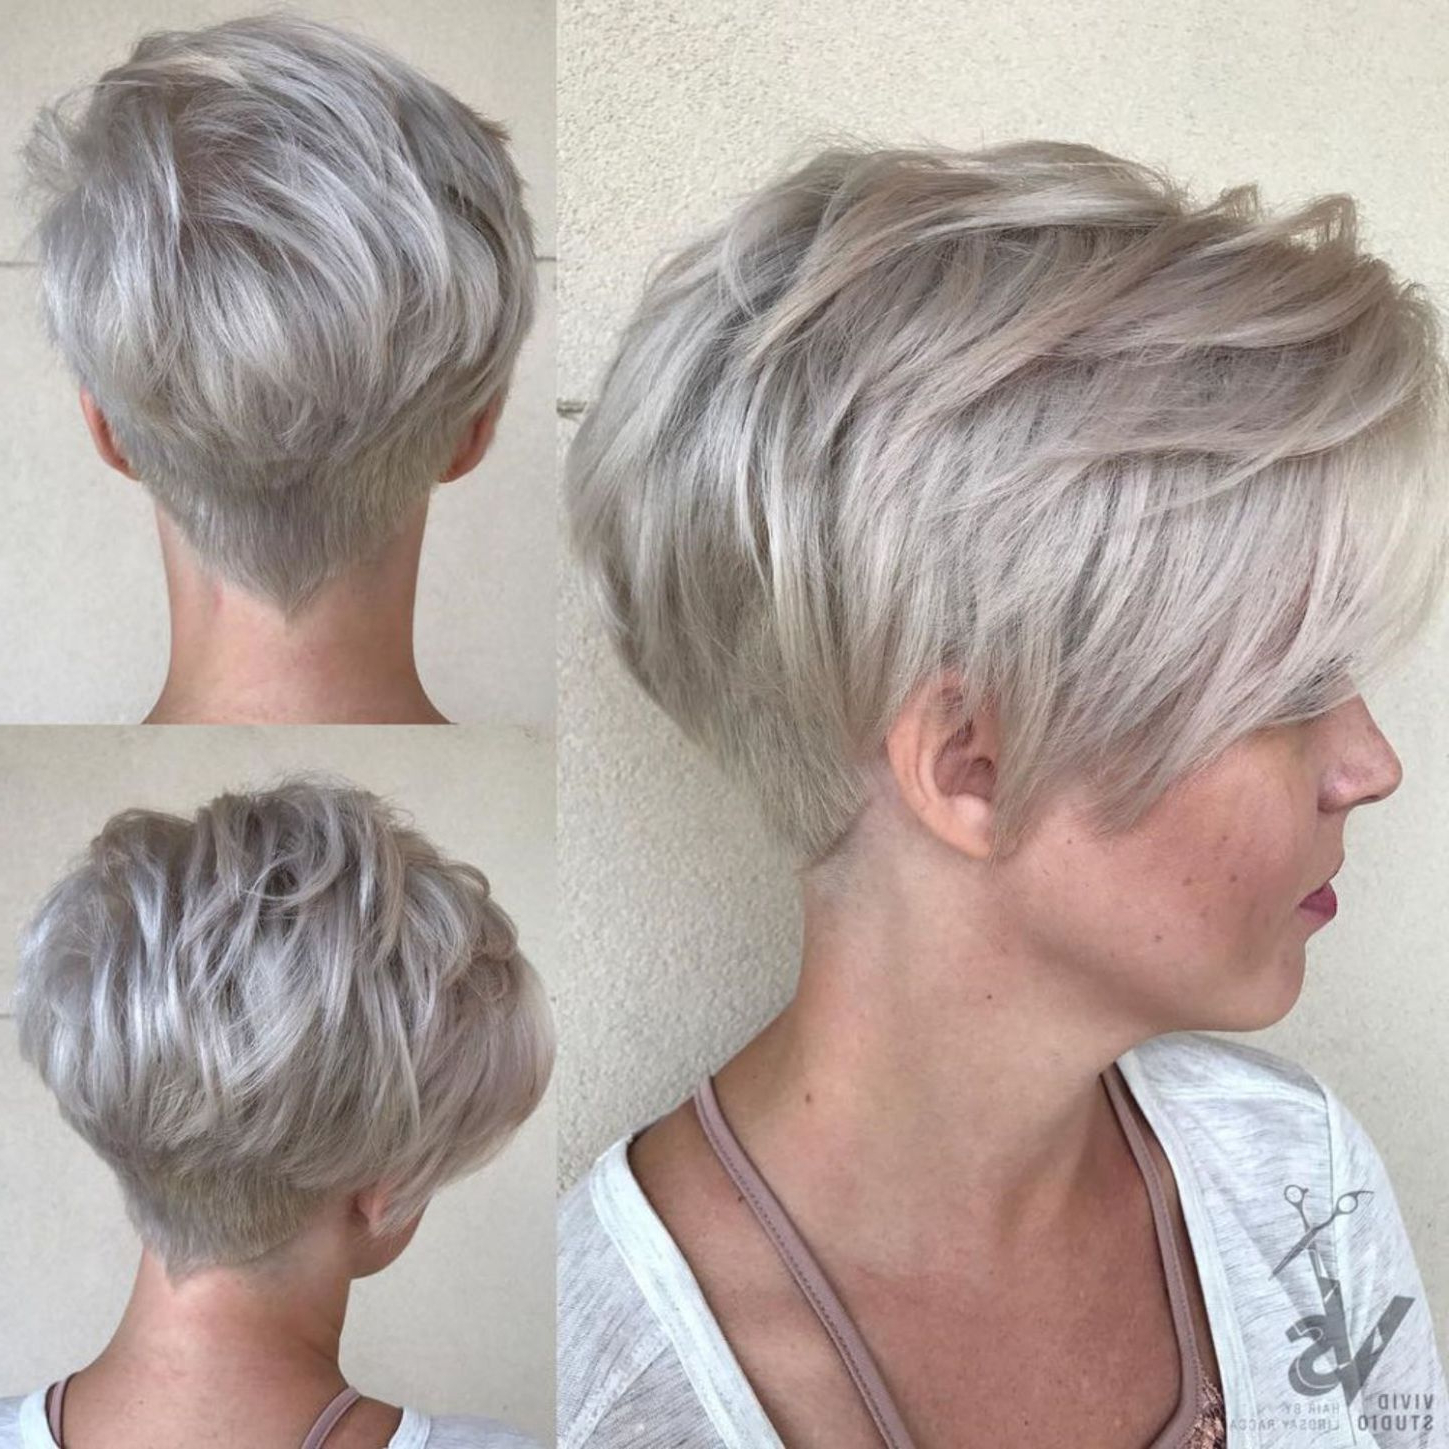 Fashion : Hairstyles Choppy Pixie Cut Round Face Ravishing With Pixie Hairstyles For Round Faces (Gallery 16 of 20)